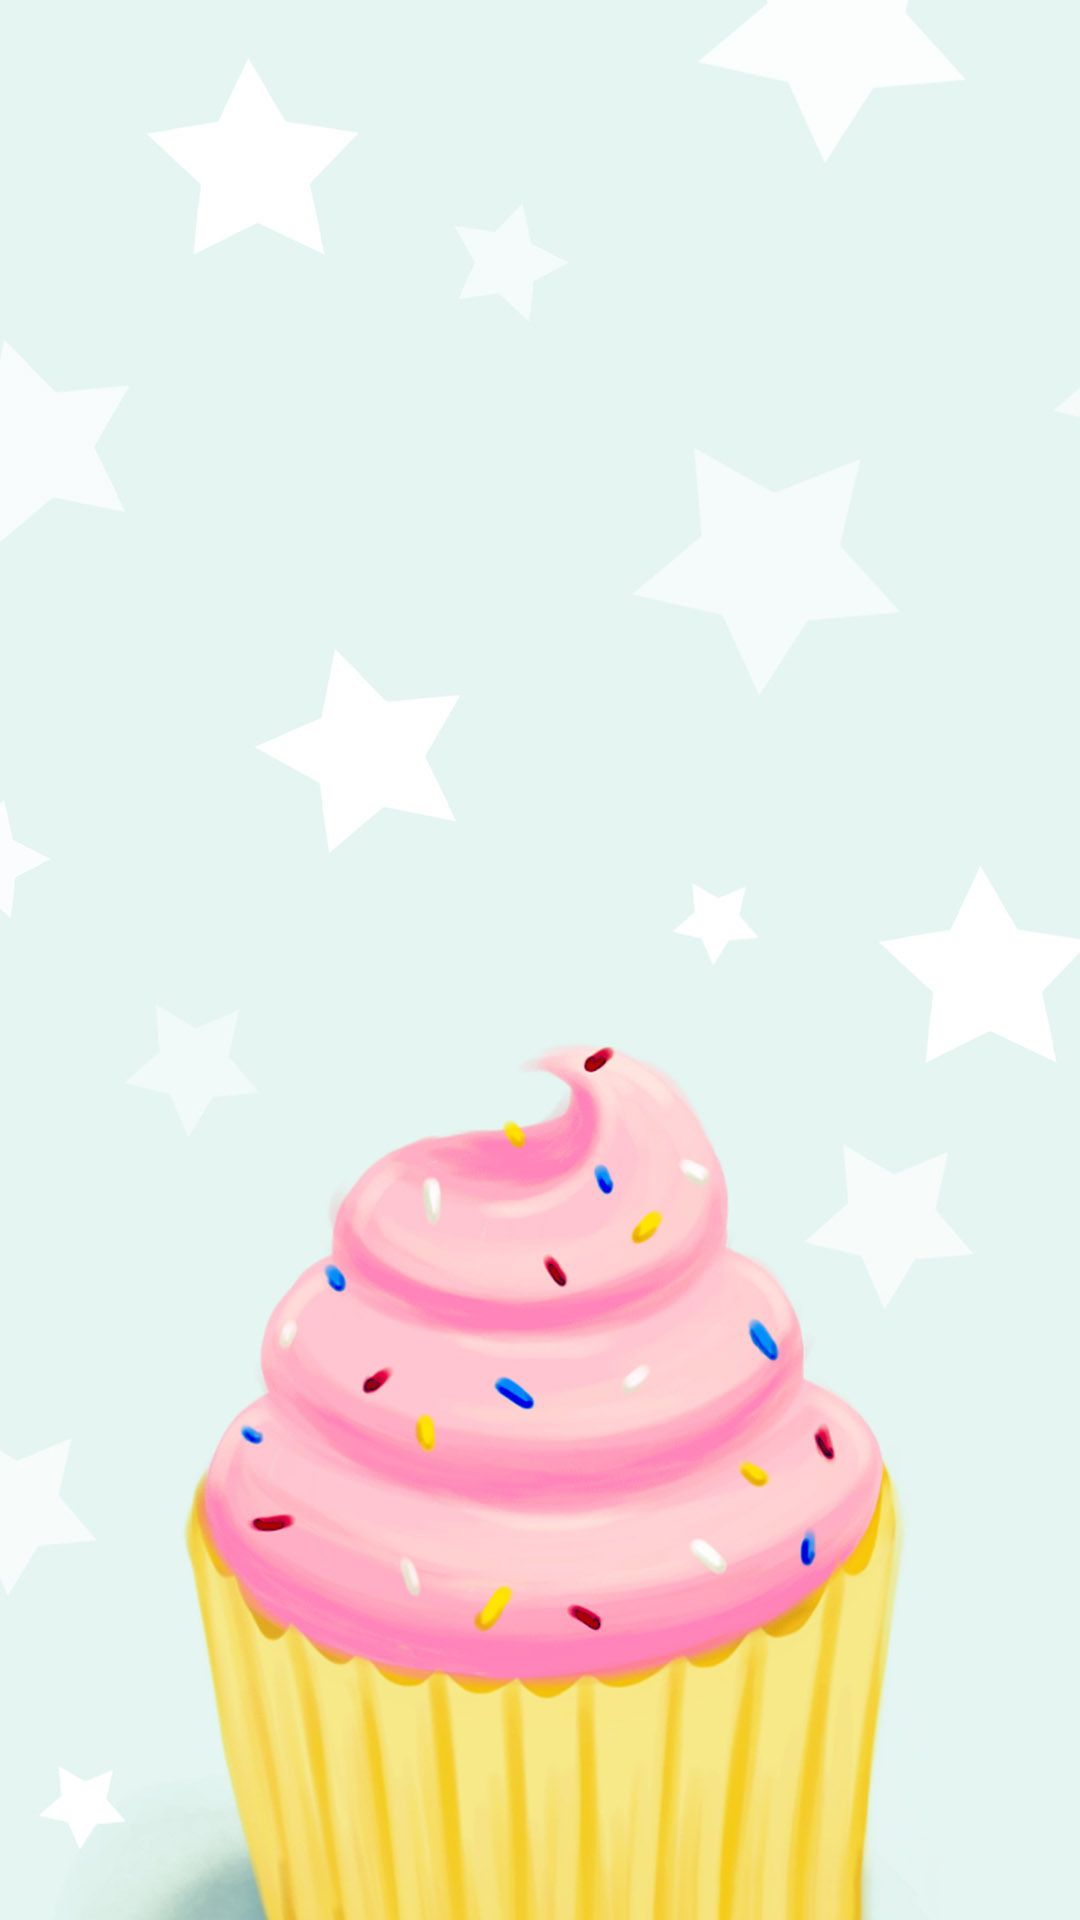 Pin de Jane Richardson en Phone Wallpapers | Fondo de pantalla de cupcakes